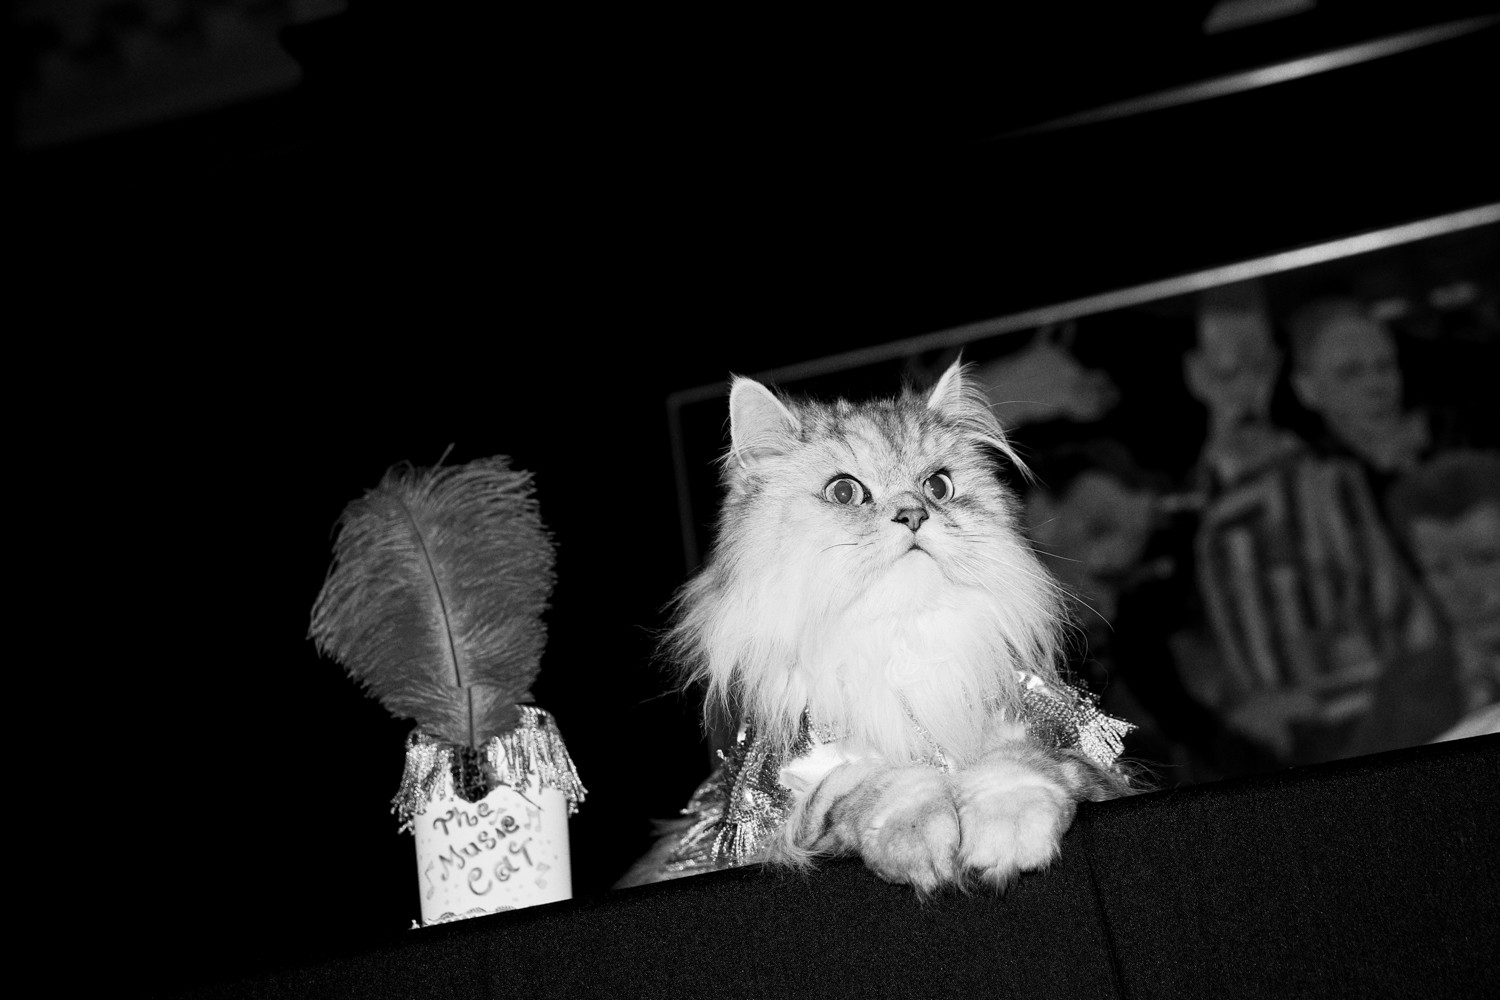 The Algonquin Hotel's annual Cat Fashion Show showcased some of the most sharply dressed felines on Aug. 3, 2017.